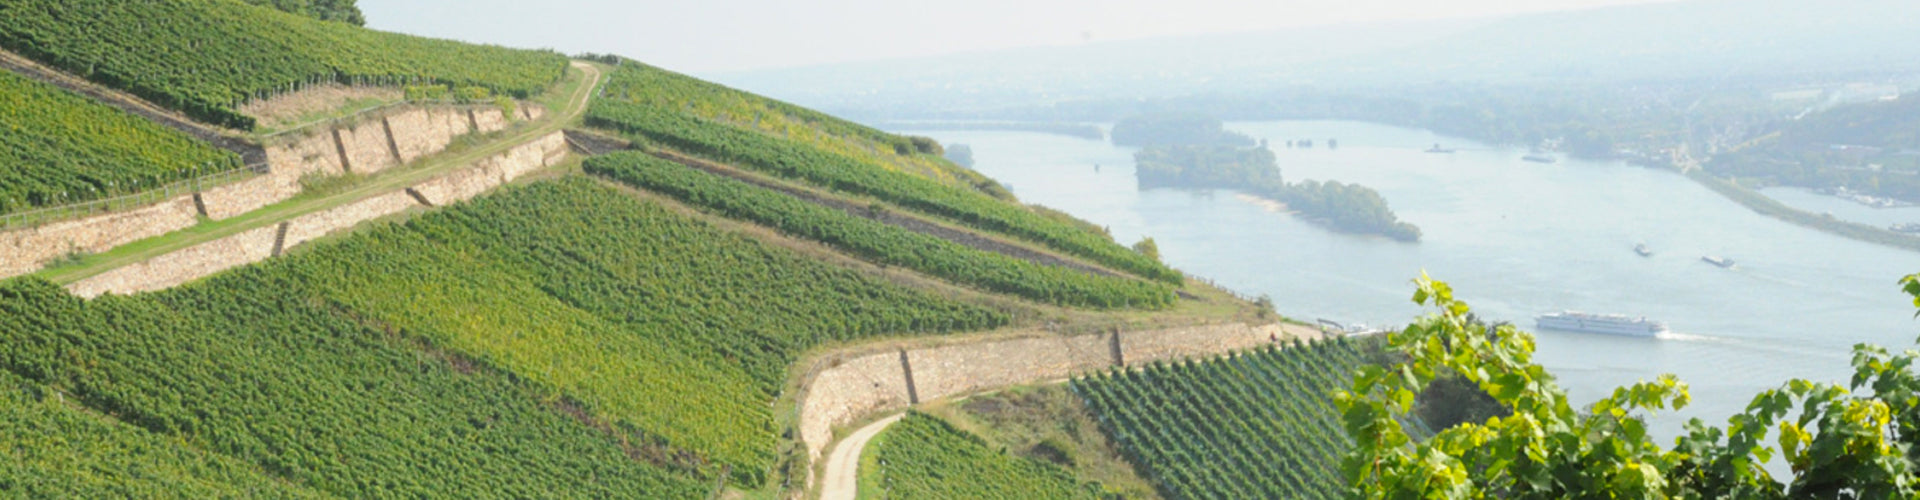 The Rheingau Wine Region of Germany